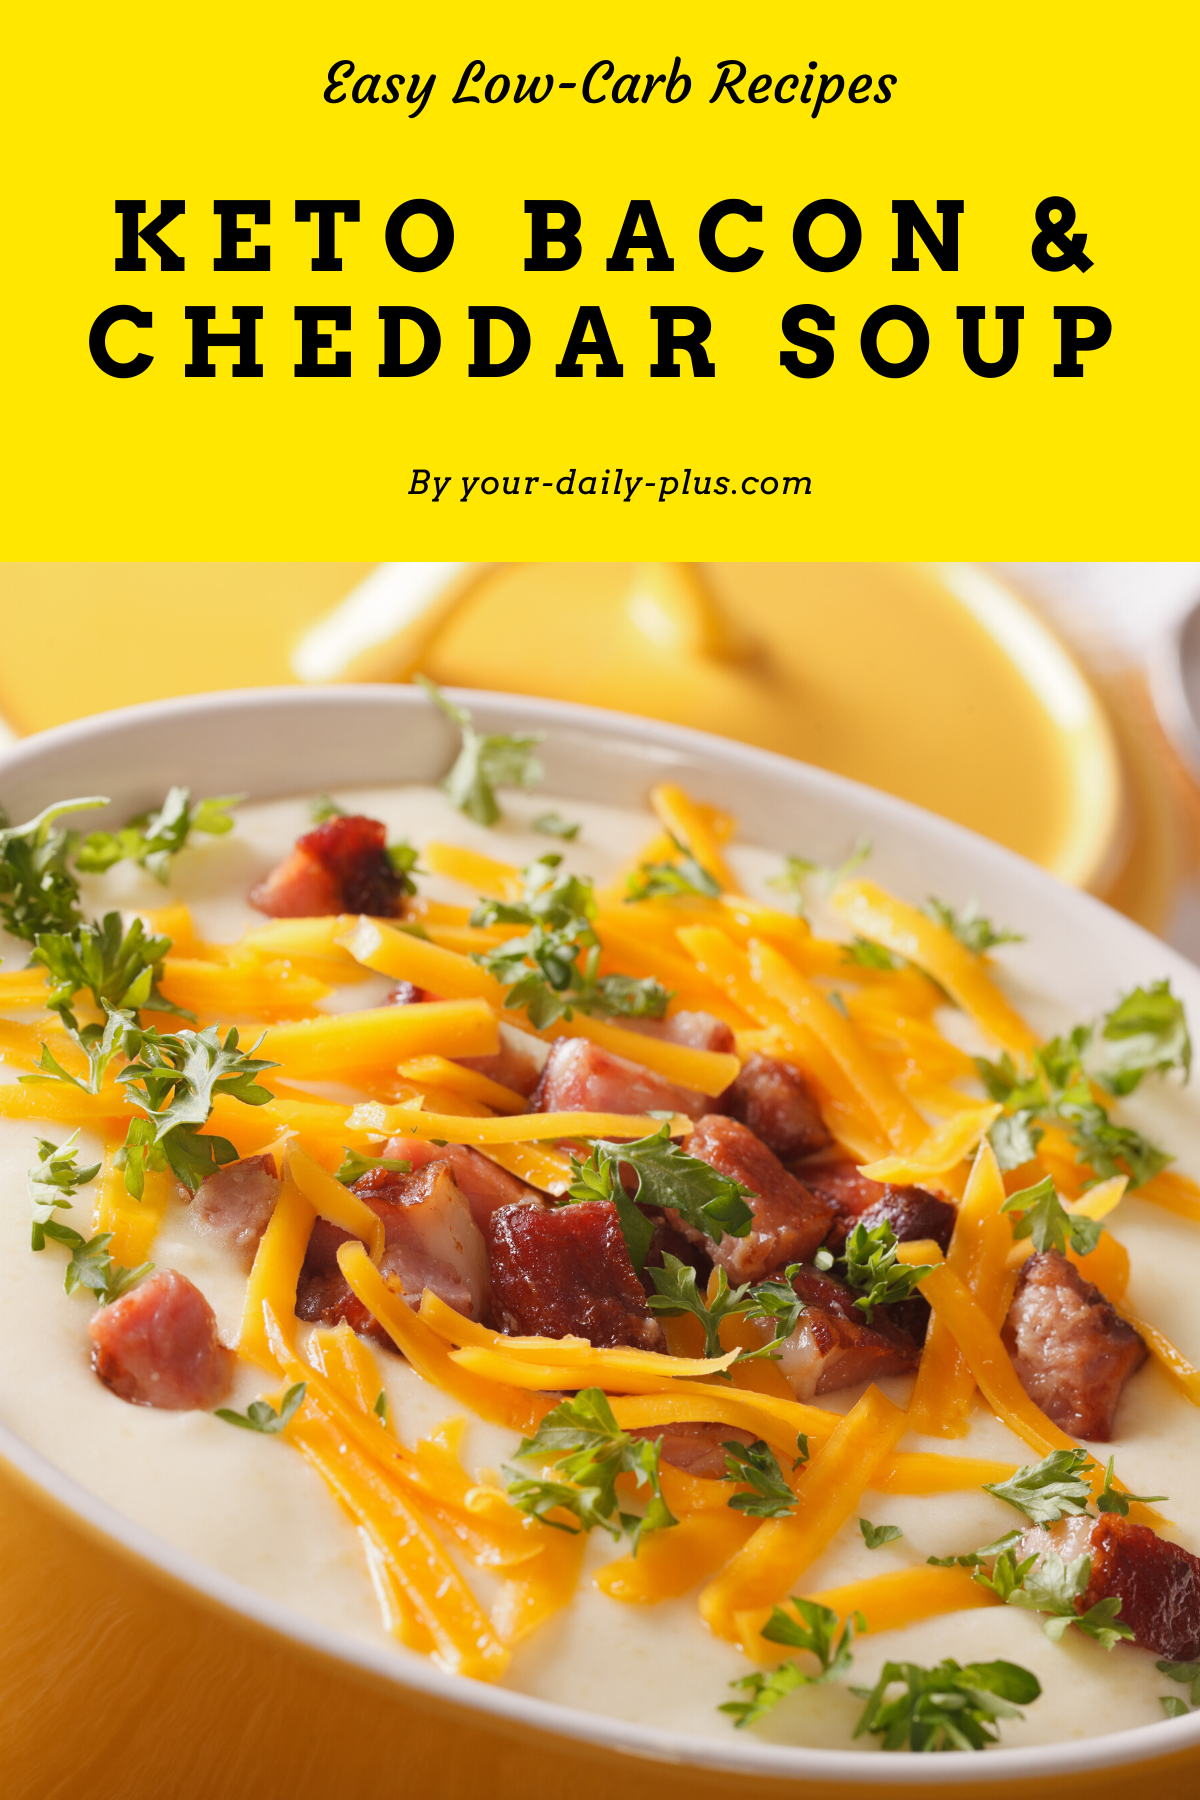 Creamy, delicious and a massive fat bomb, this soup is going to have you powering through your day with the strength of champions. We've combined sharp, cheddar cheese with bacon in an easy-to-make soup. #souprecipes #lowcarbsoup #keto #ketodiet